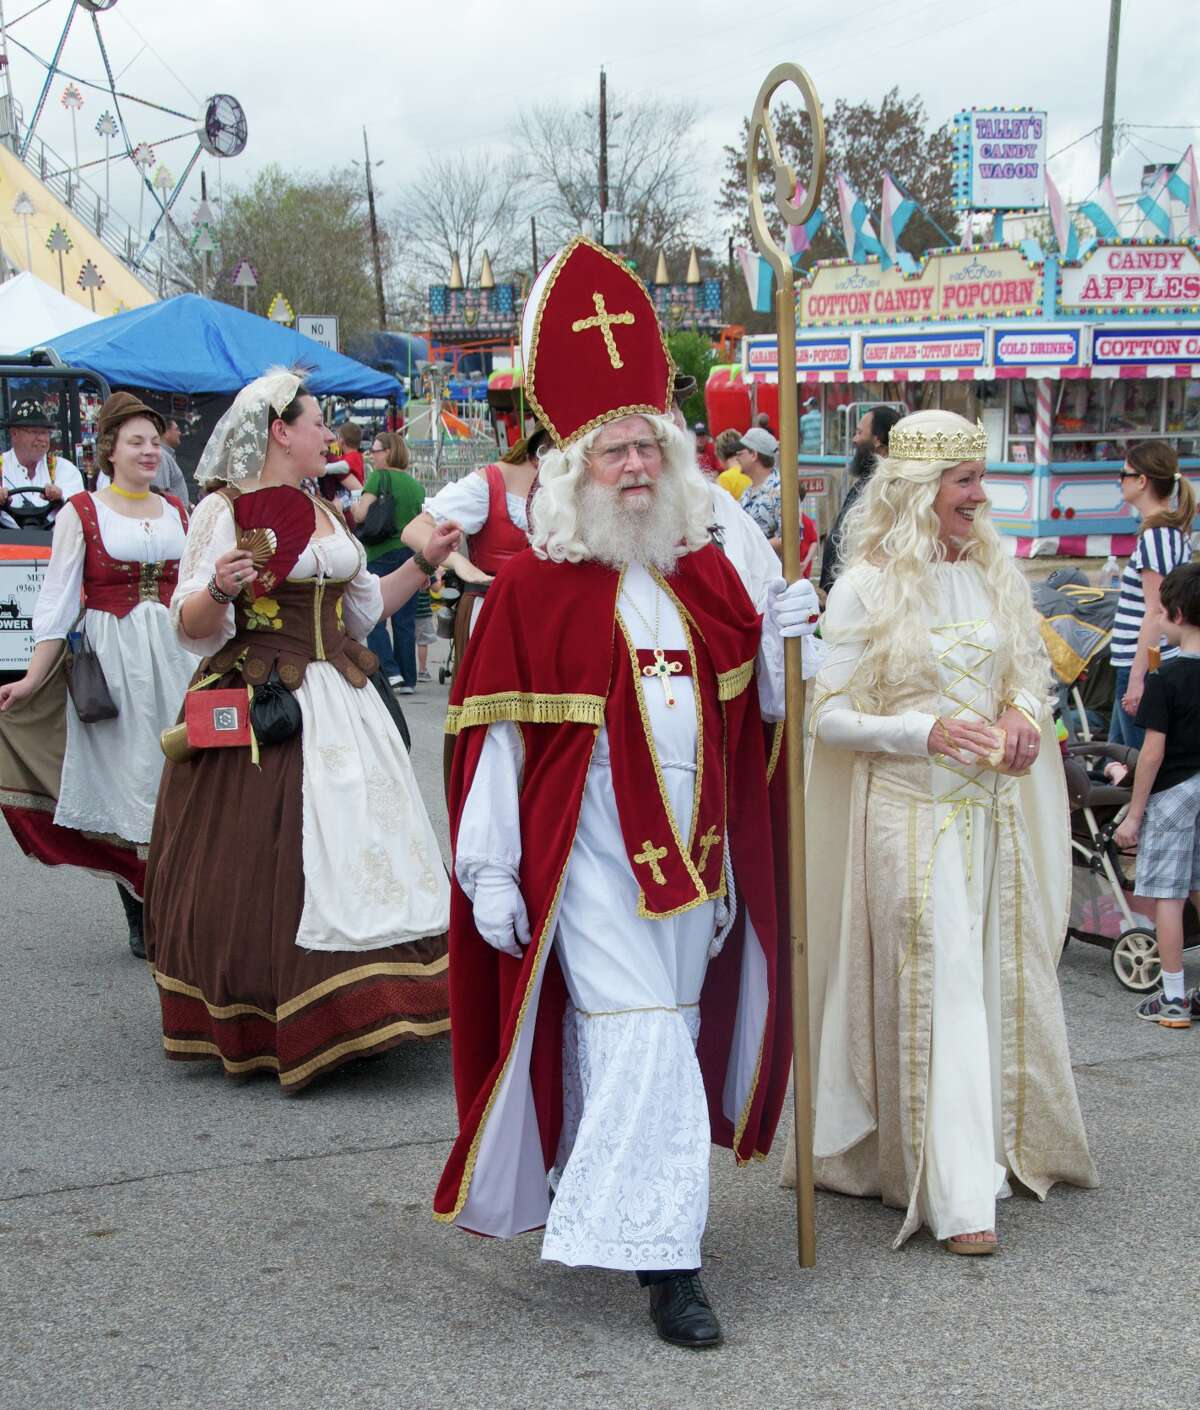 The Tomball German Christmas Market is an open-air market featuring 120 unique street merchants and antique shops dotting the streets of this old town. This year's event is 6 p.m. to 10 p.m. on Friday, Dec. 12, 10 a.m. to 10 p.m. on Saturday, Dec. 13 and 10 a.m. to 6 p.m. on Sunday, Dec. 14 centered in Tomball's Old Town near the historical Train Depot, 201 S. Elm in Tomball